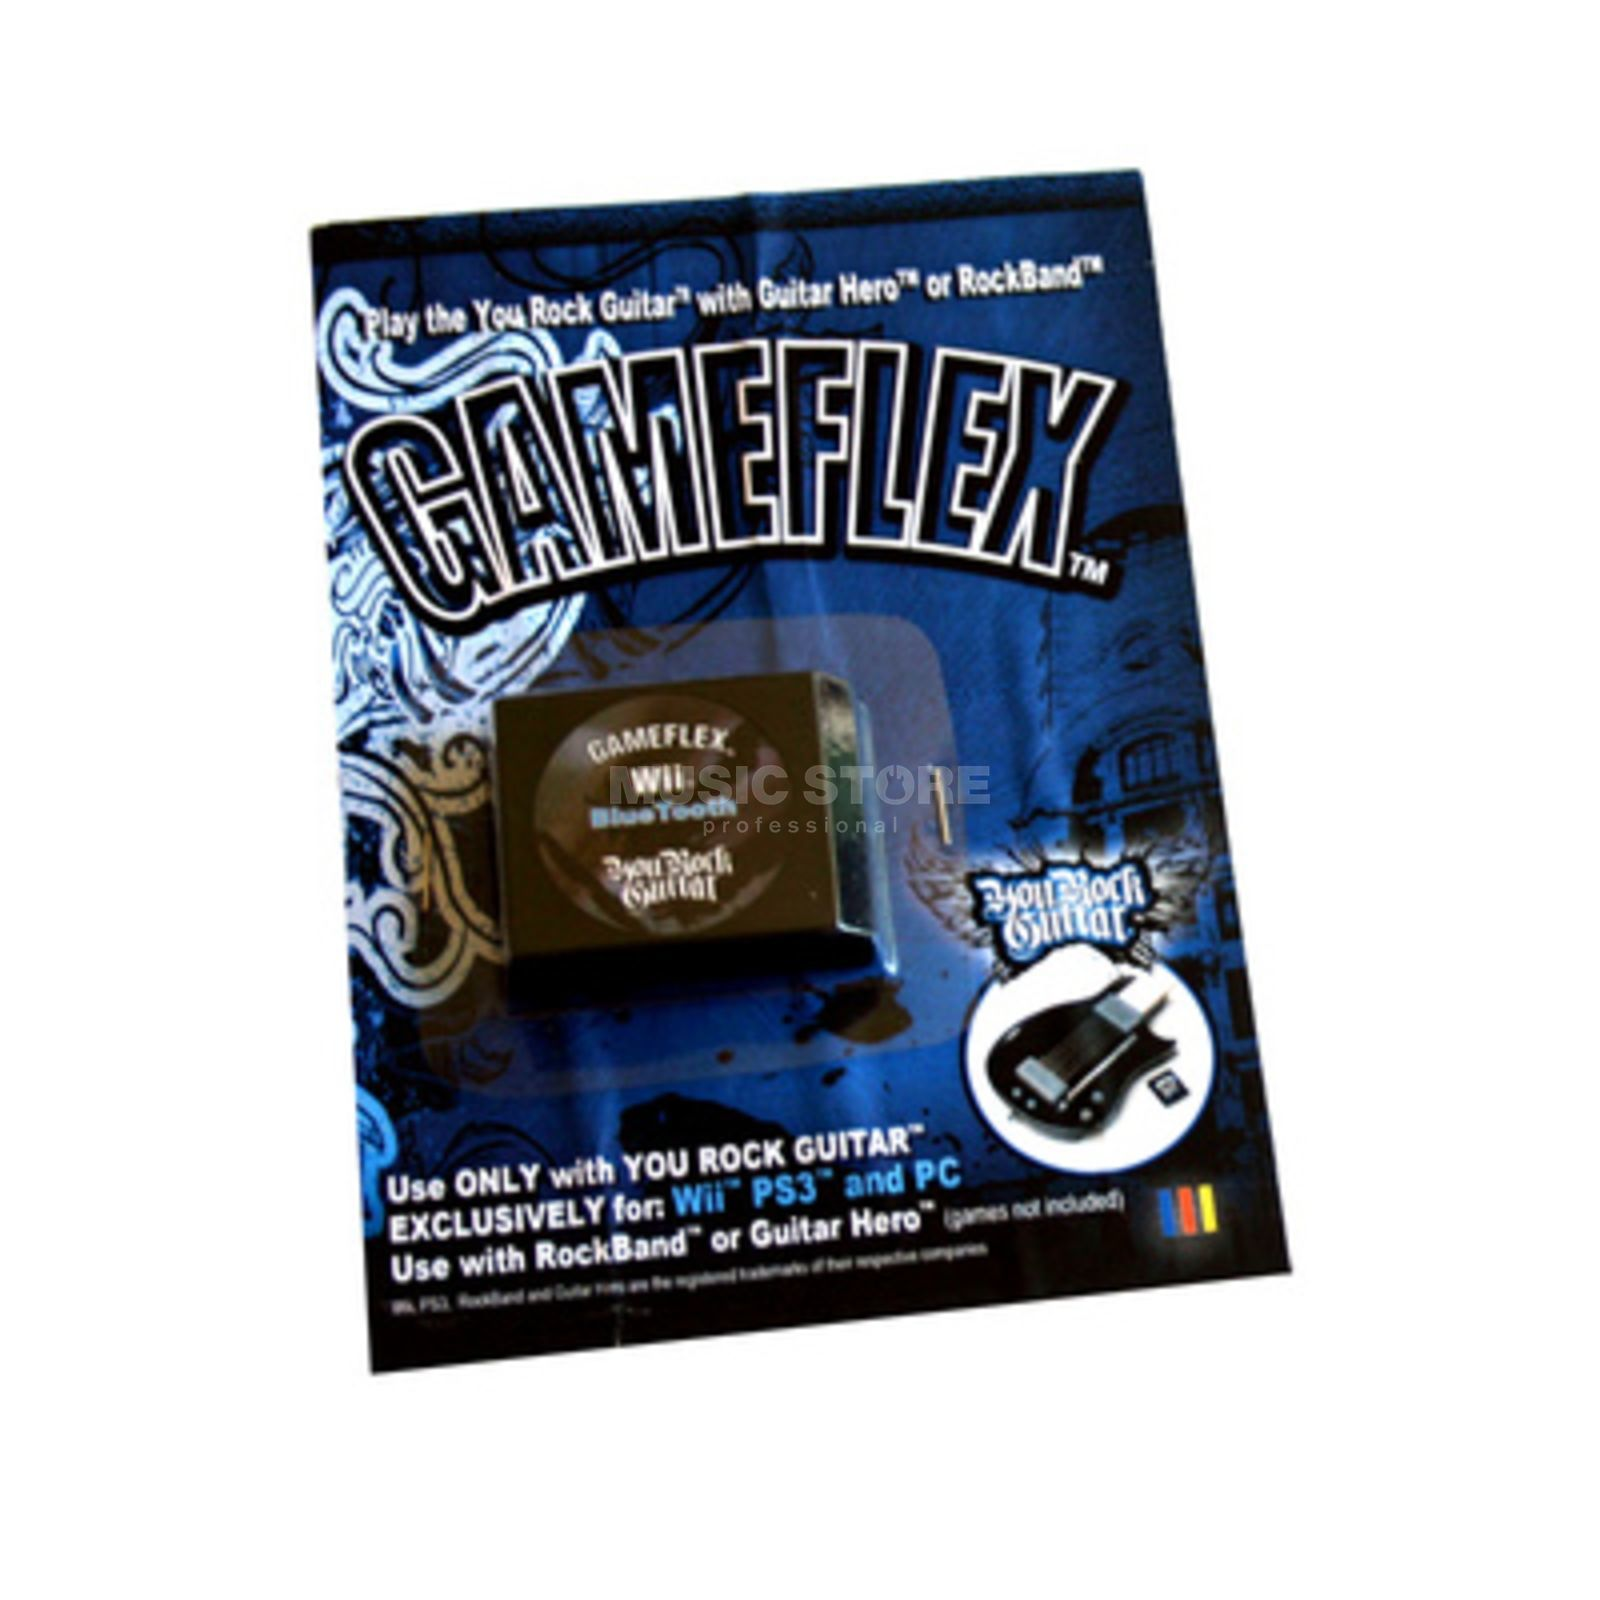 You Rock Guitar Gameflex - Cartridge for PS3 /PC You Rock Guitar/ YRG102 Product Image